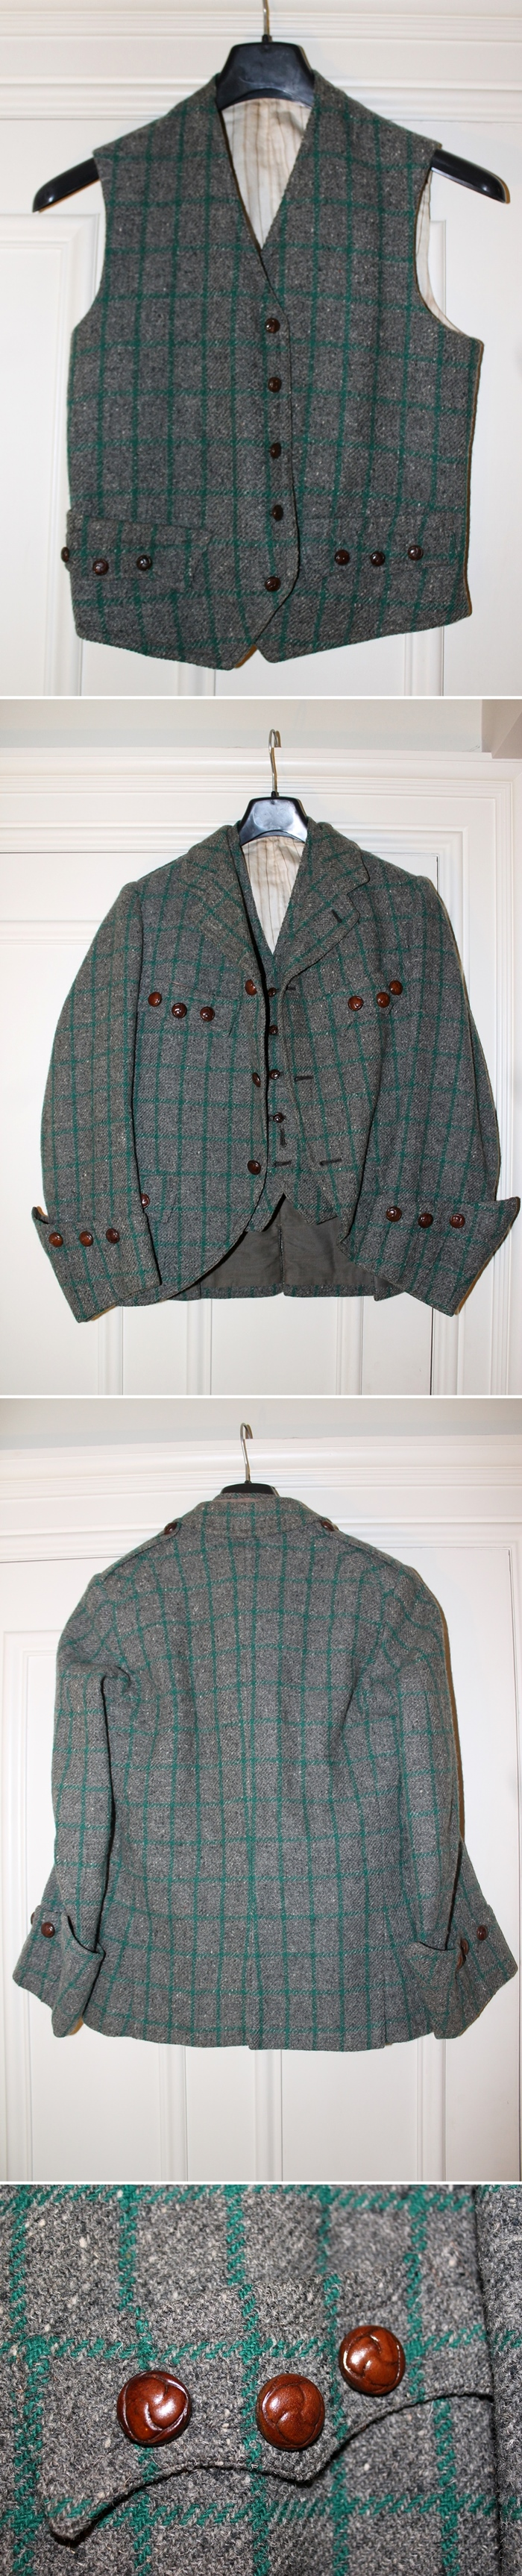 39 ? The last Glenbuchat Kilt Jacket